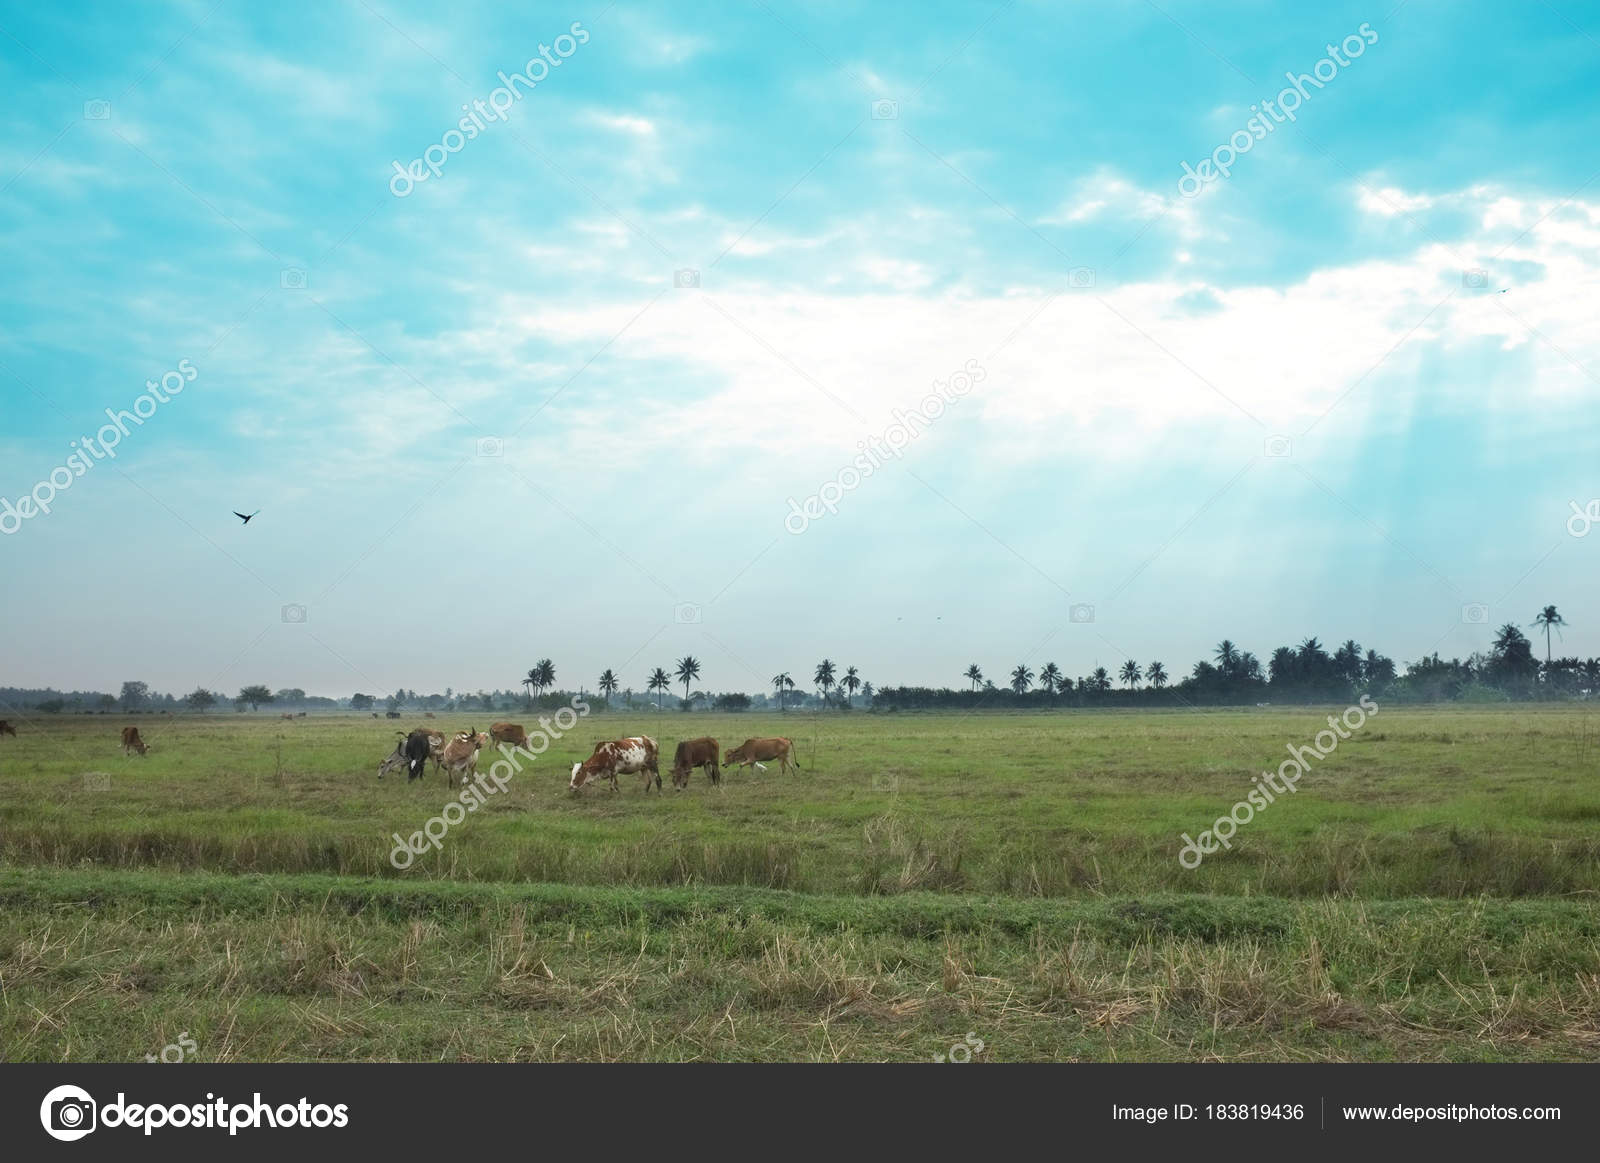 grassy field background. Beautiful Background , Cows In A Grassy Field On Bright And Sunny Day  Thailand. ( Saturation Style ) \u2014 Photo By Hepjam@hotmail.com